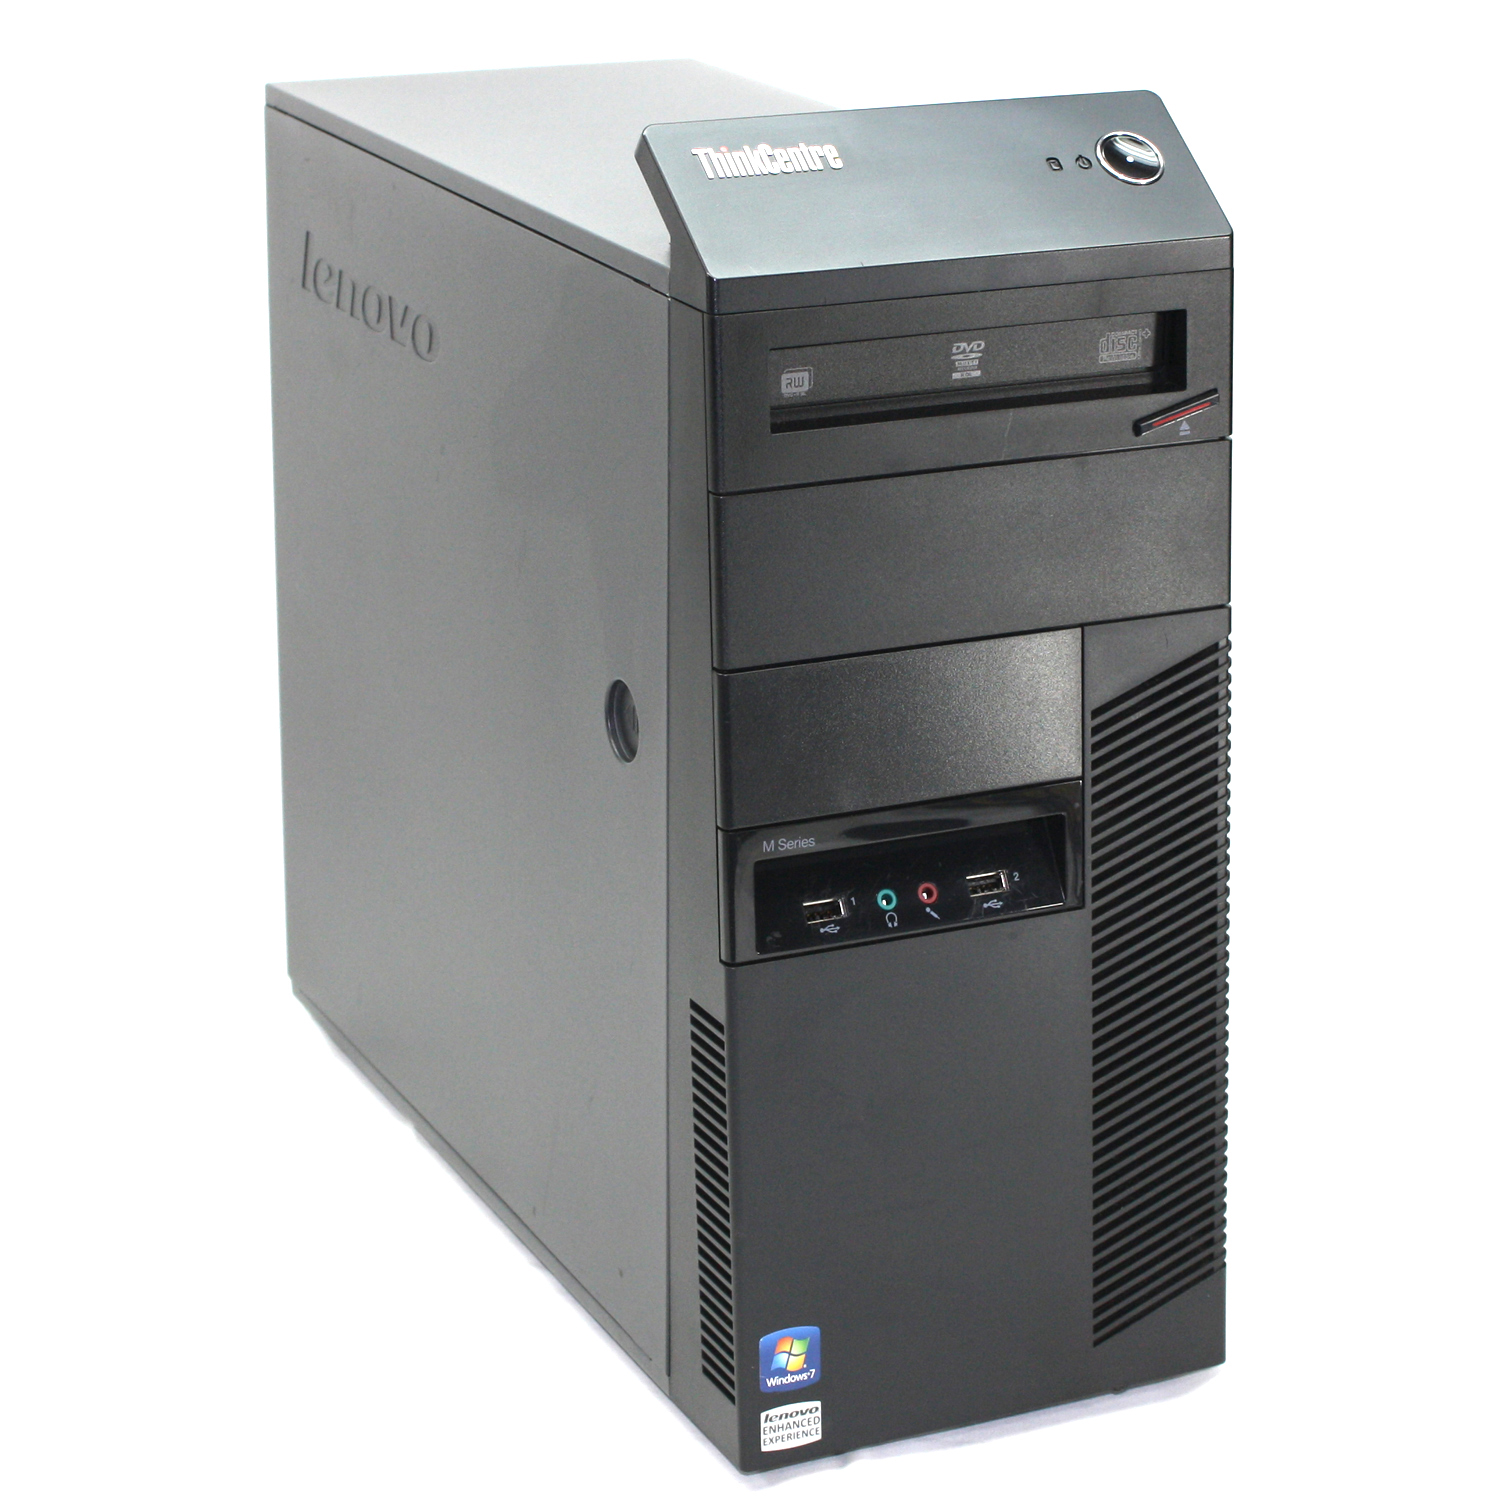 Lenovo ThinkCentre M90 Desktop Tower - Intel Core i7 up to 3.6GHz, 8GB RAM, 500GB HDD, Windows 10 Pro (Refurbished)